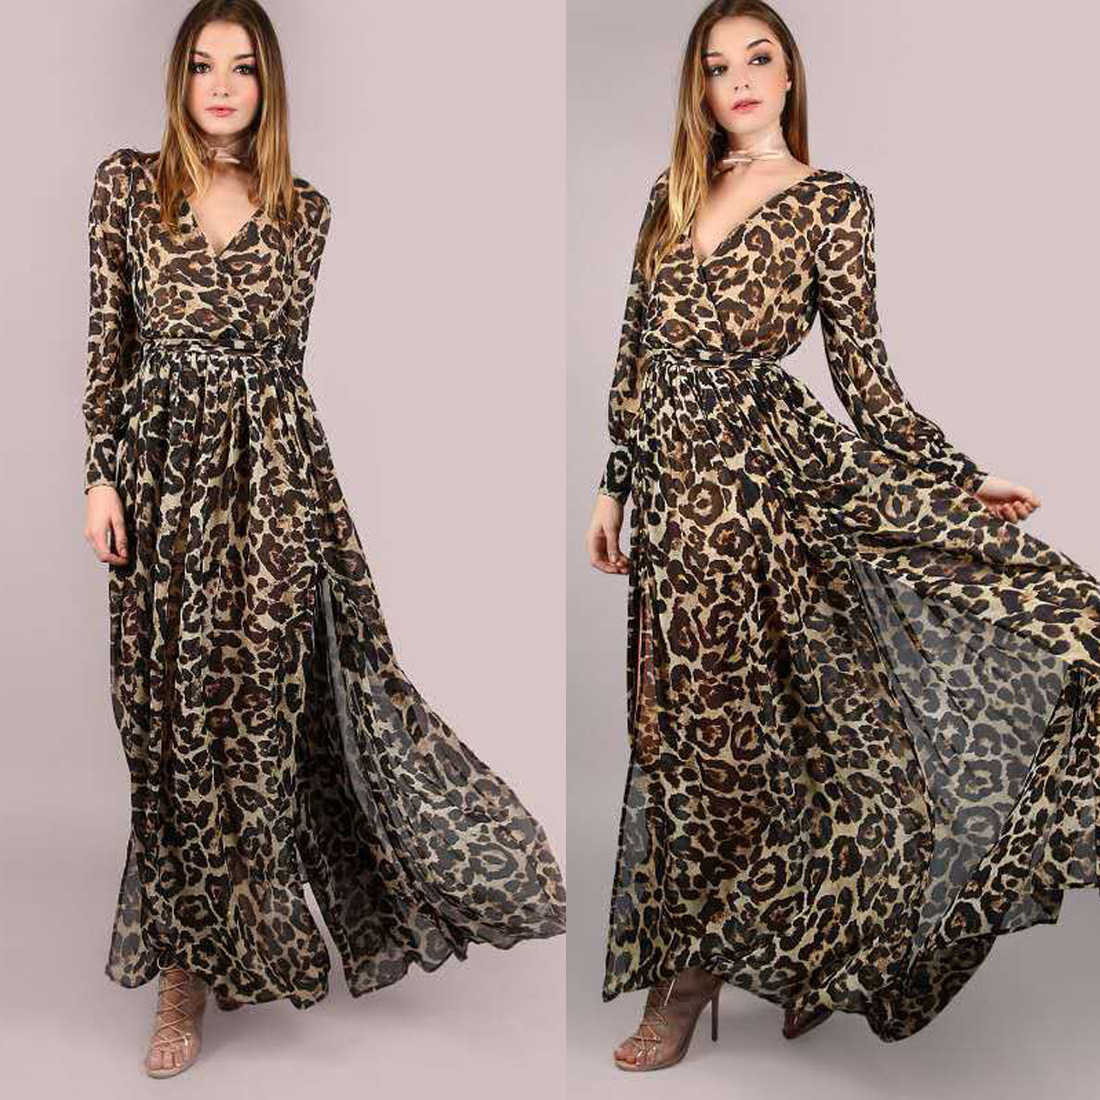 0c862a893bb5 ... New Fashion Autumn Sexy X-long Dresses Women Leopard Print Long Sleeve  Maxi Dress Sexy